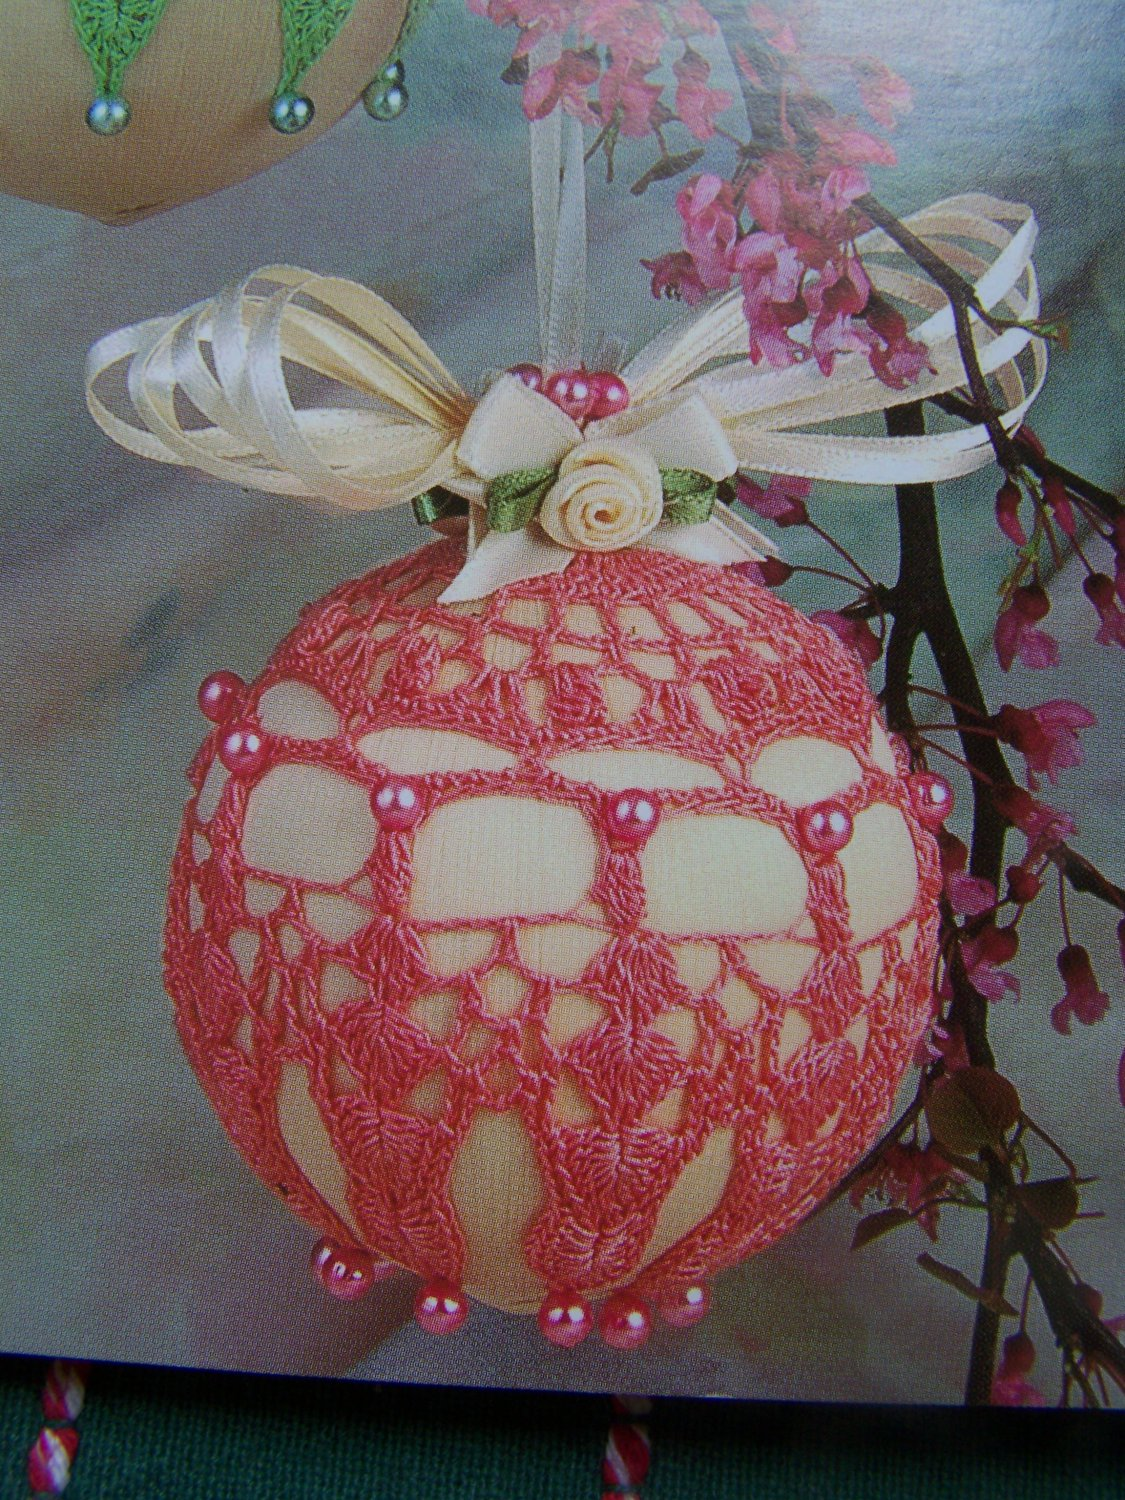 Free Crochet Patterns For Christmas Ball Covers : 12 New Annies Attic Thread Crochet Patterns Springtime ...